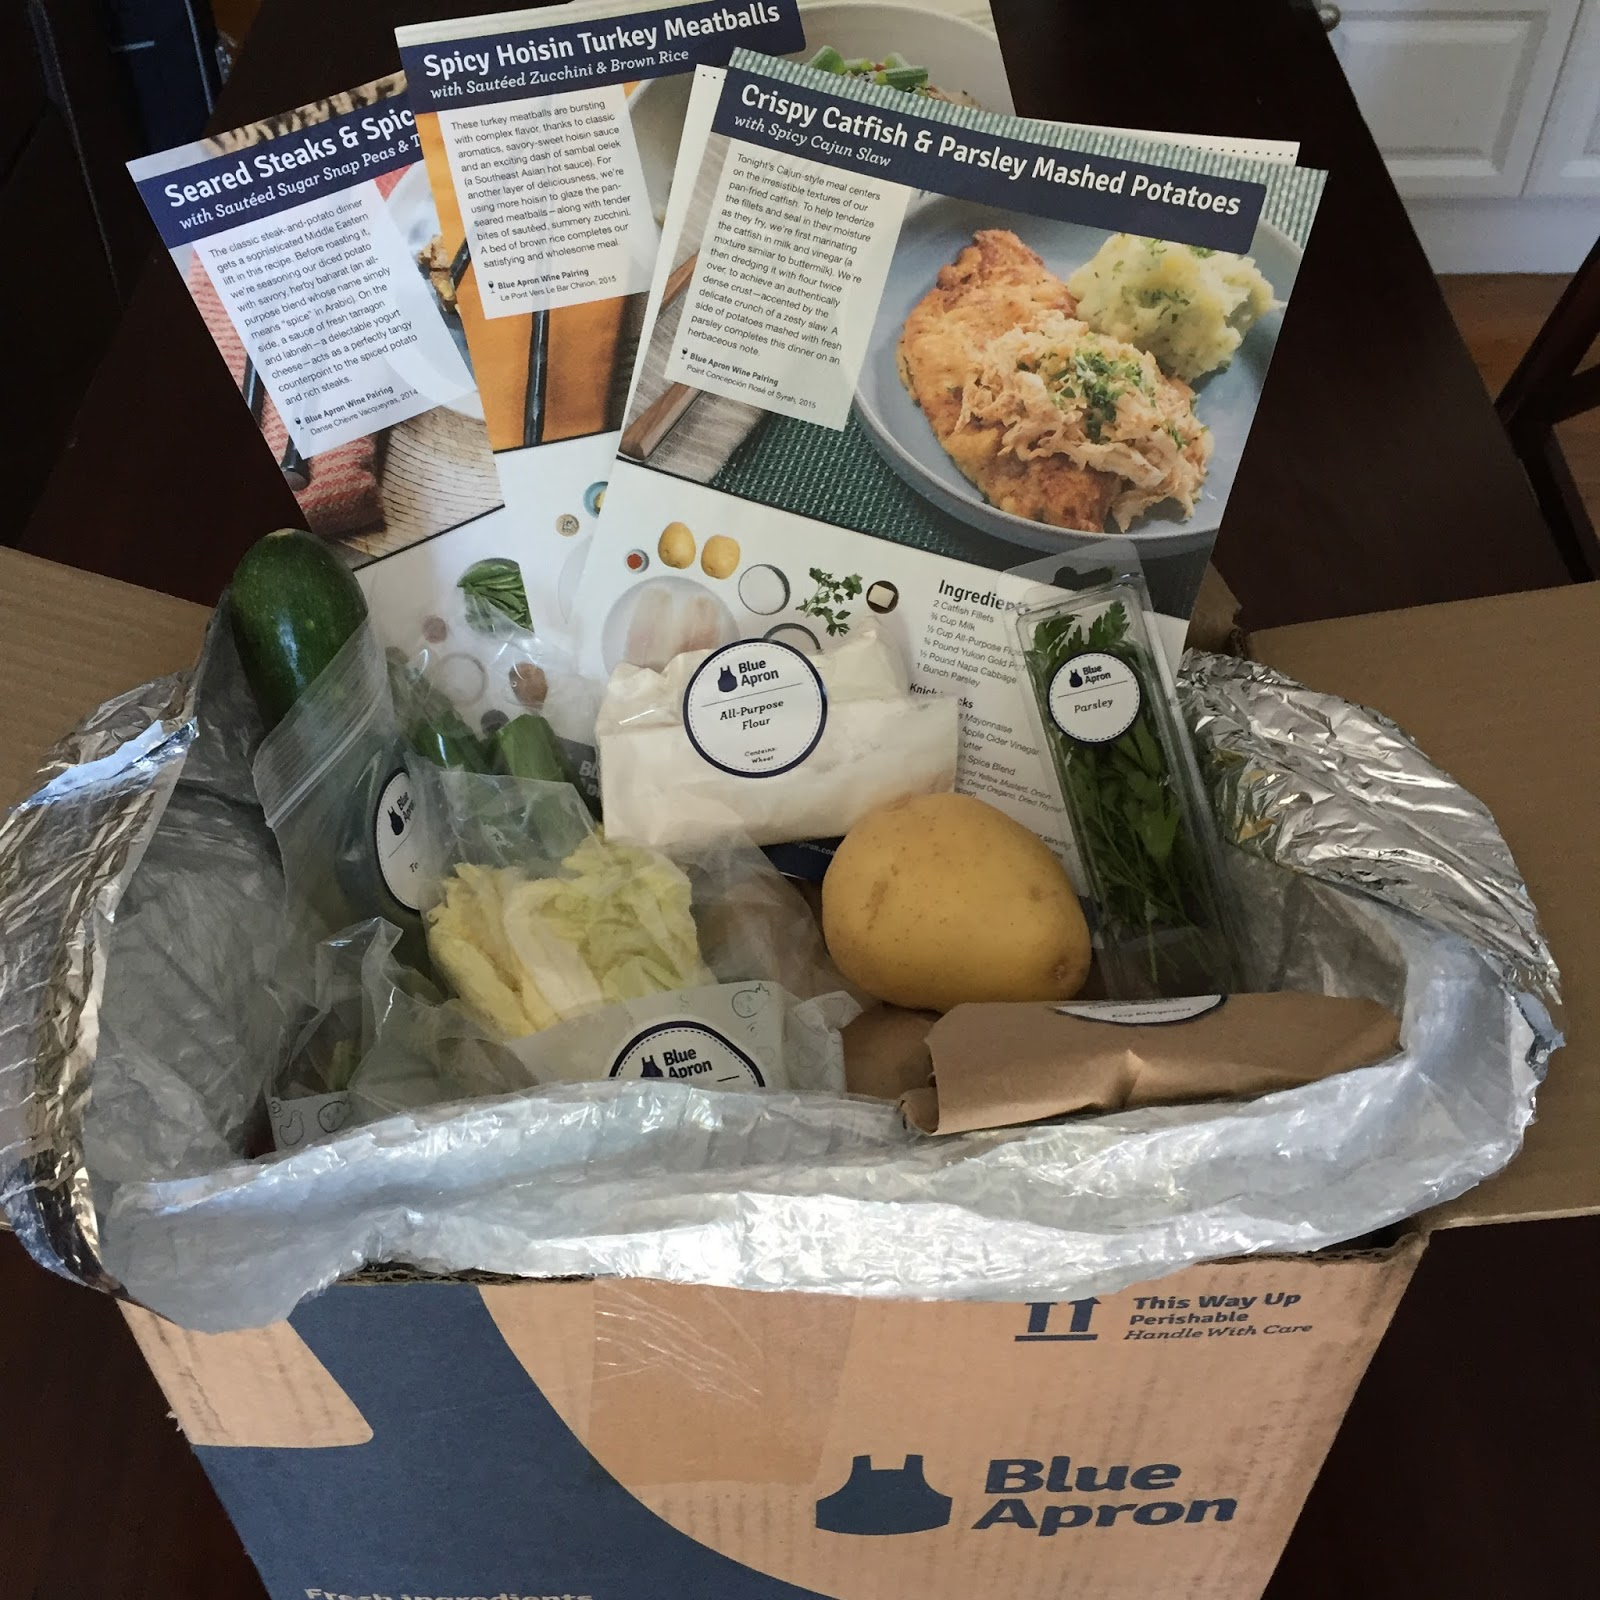 Blue apron example meals